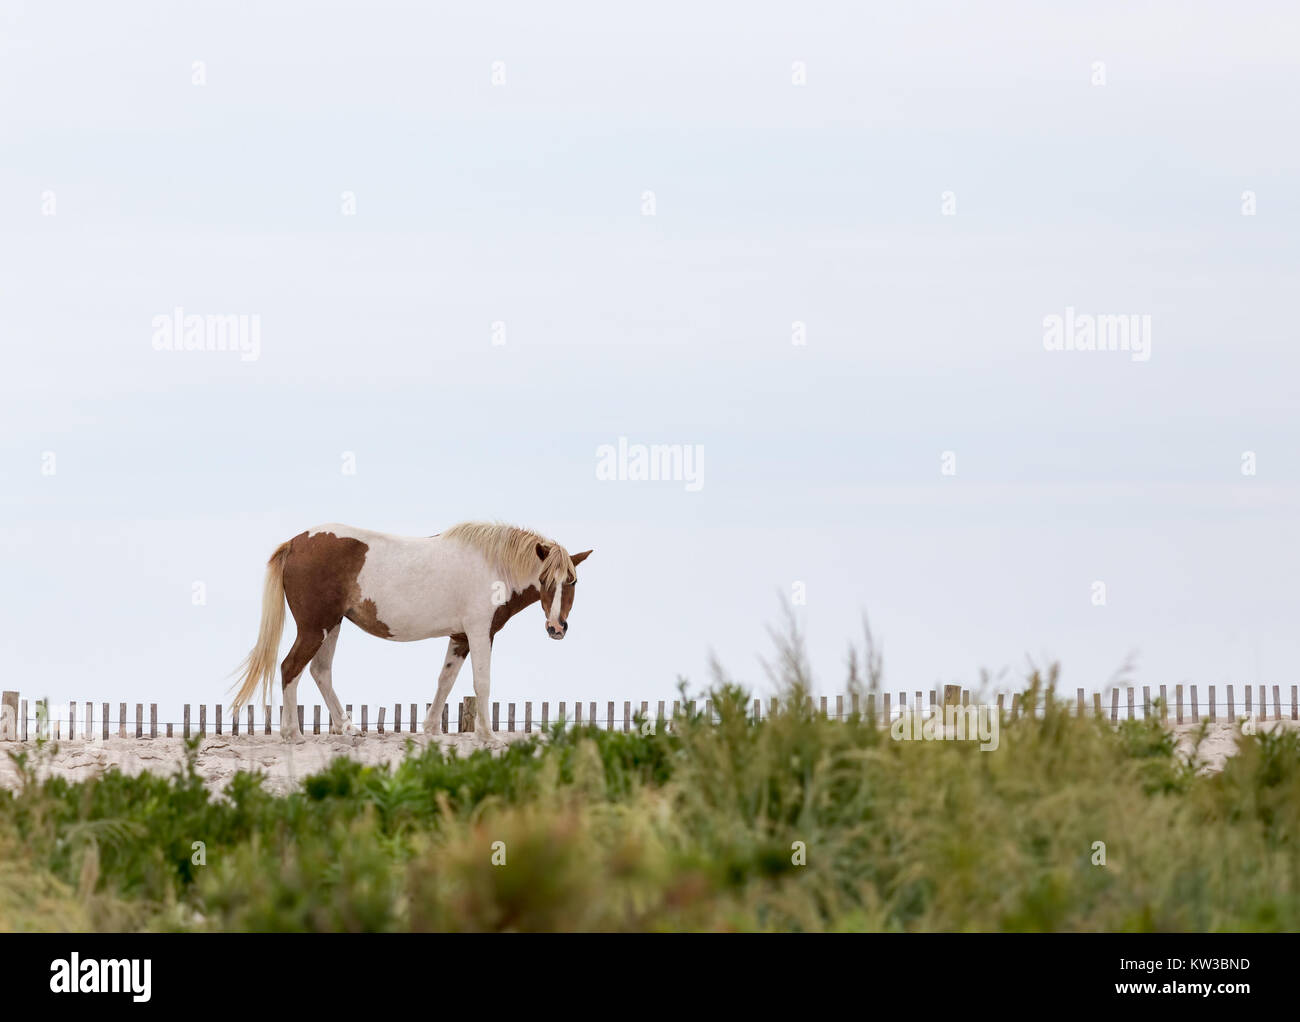 A Wild pony, horse, of Assateague Island, Maryland, USA. These animals are also known as Assateague Horse or Chincoteague Stock Photo